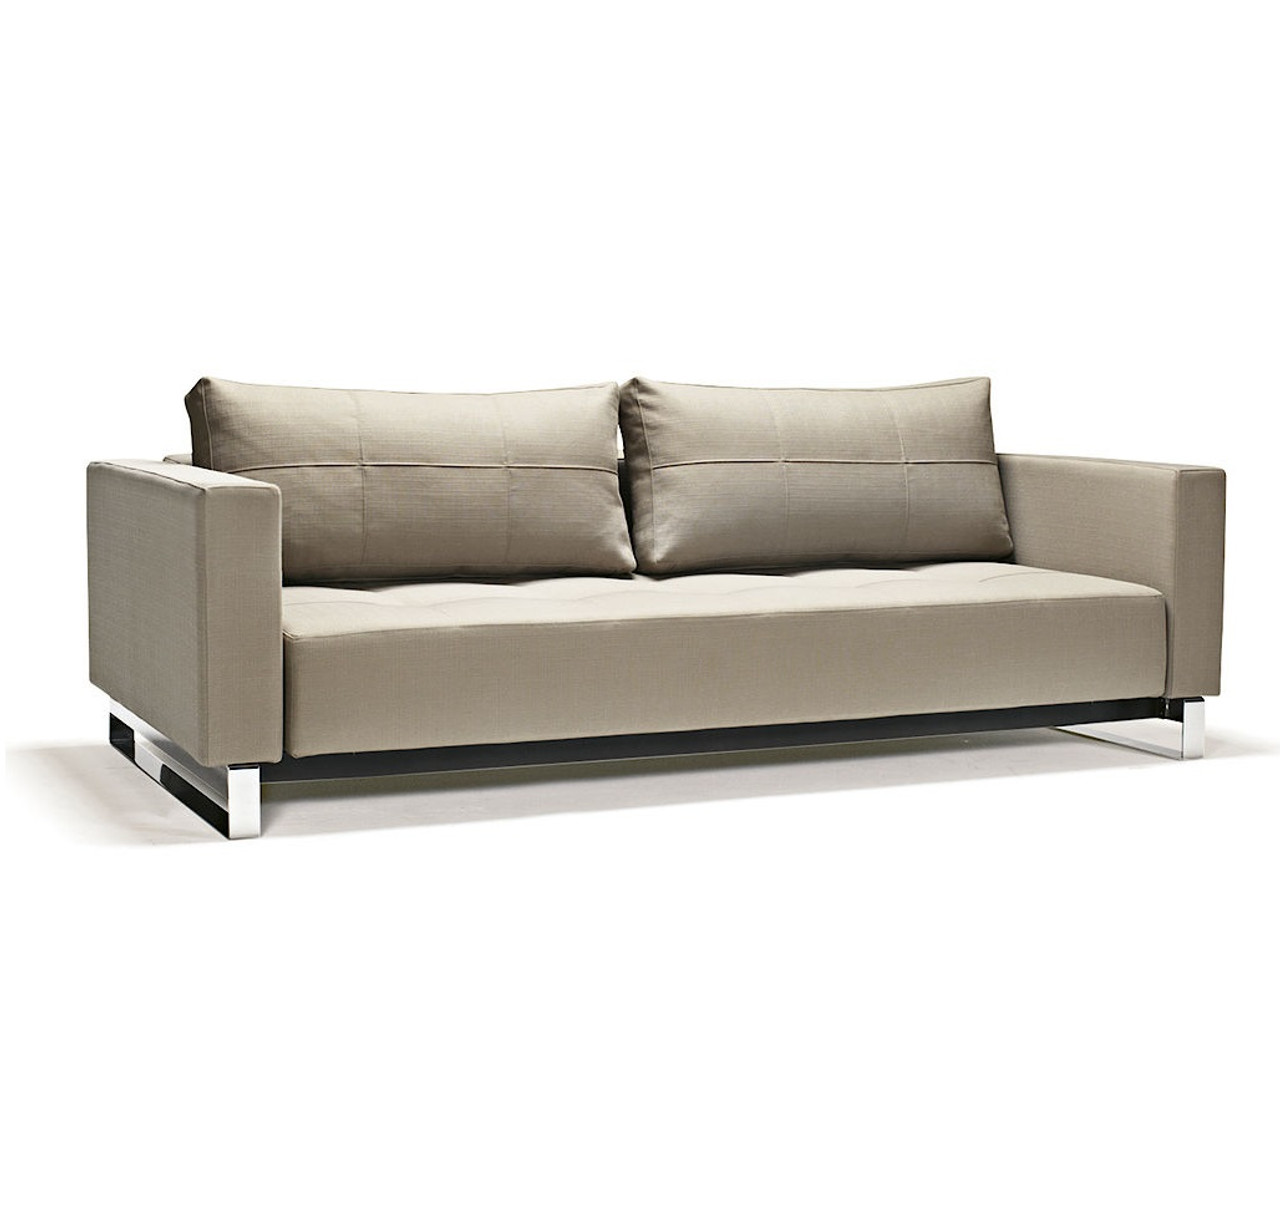 Sofa Queen Cassius Deluxe Excess Lounger Sleeper Sofa Bed Queen